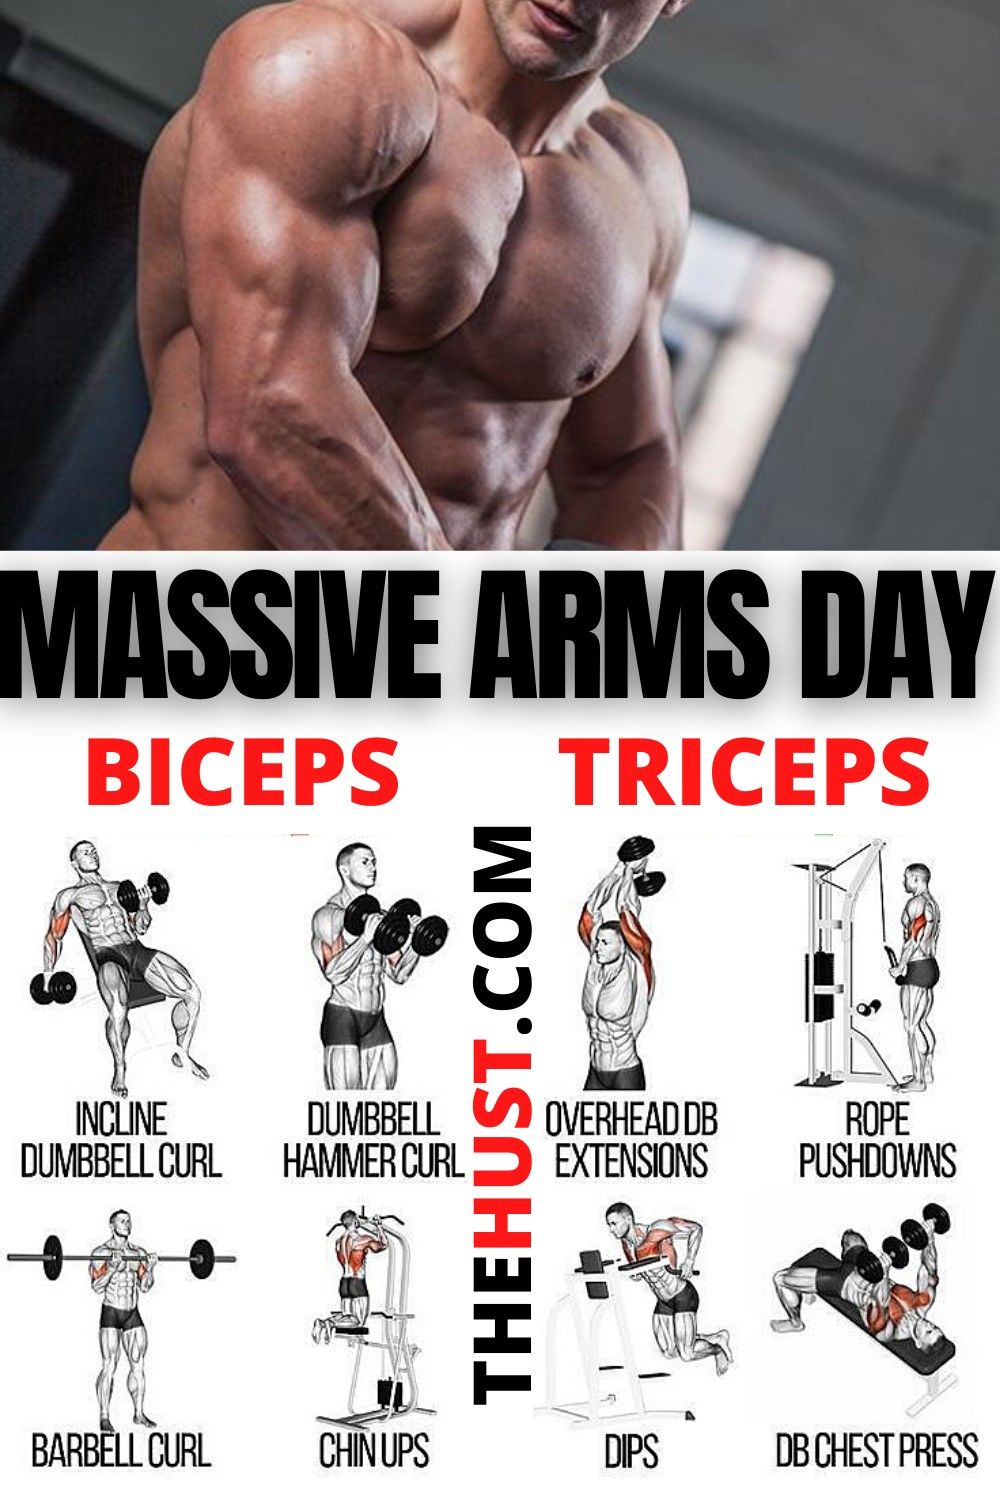 Arms Day Best Moves To Get Bigger Arms In 2021 Arm Day Workout Arm Workout Arms Workout Plan